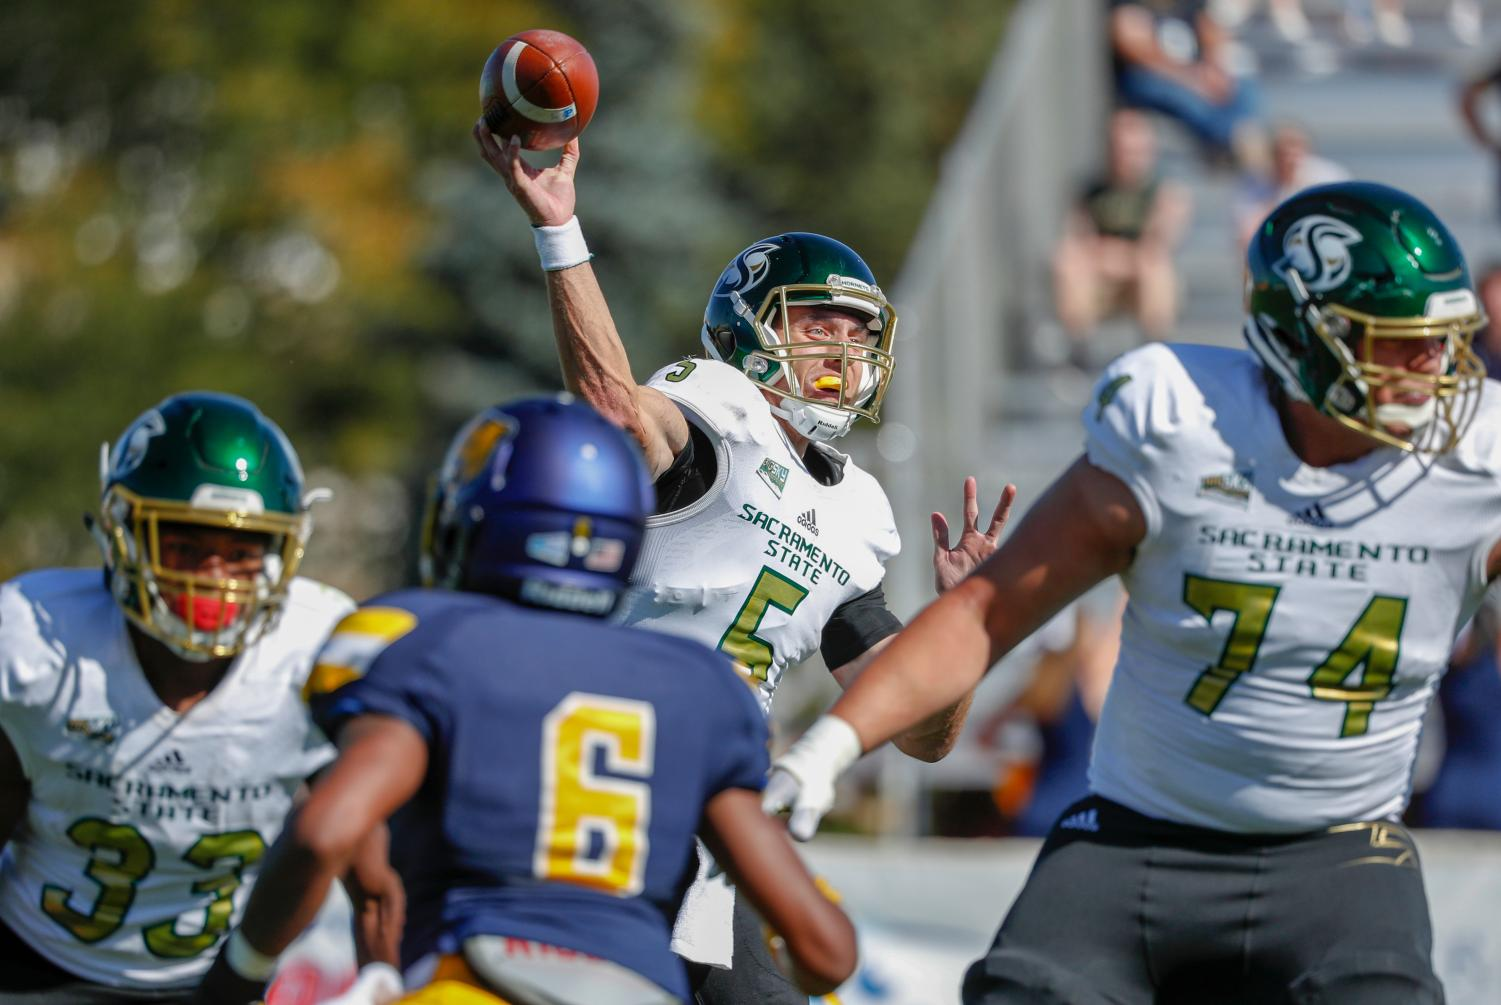 University of Northern Colorado plays Sacramento State Saturday September 15, 2018 at Nottingham Field in Greeley, CO.